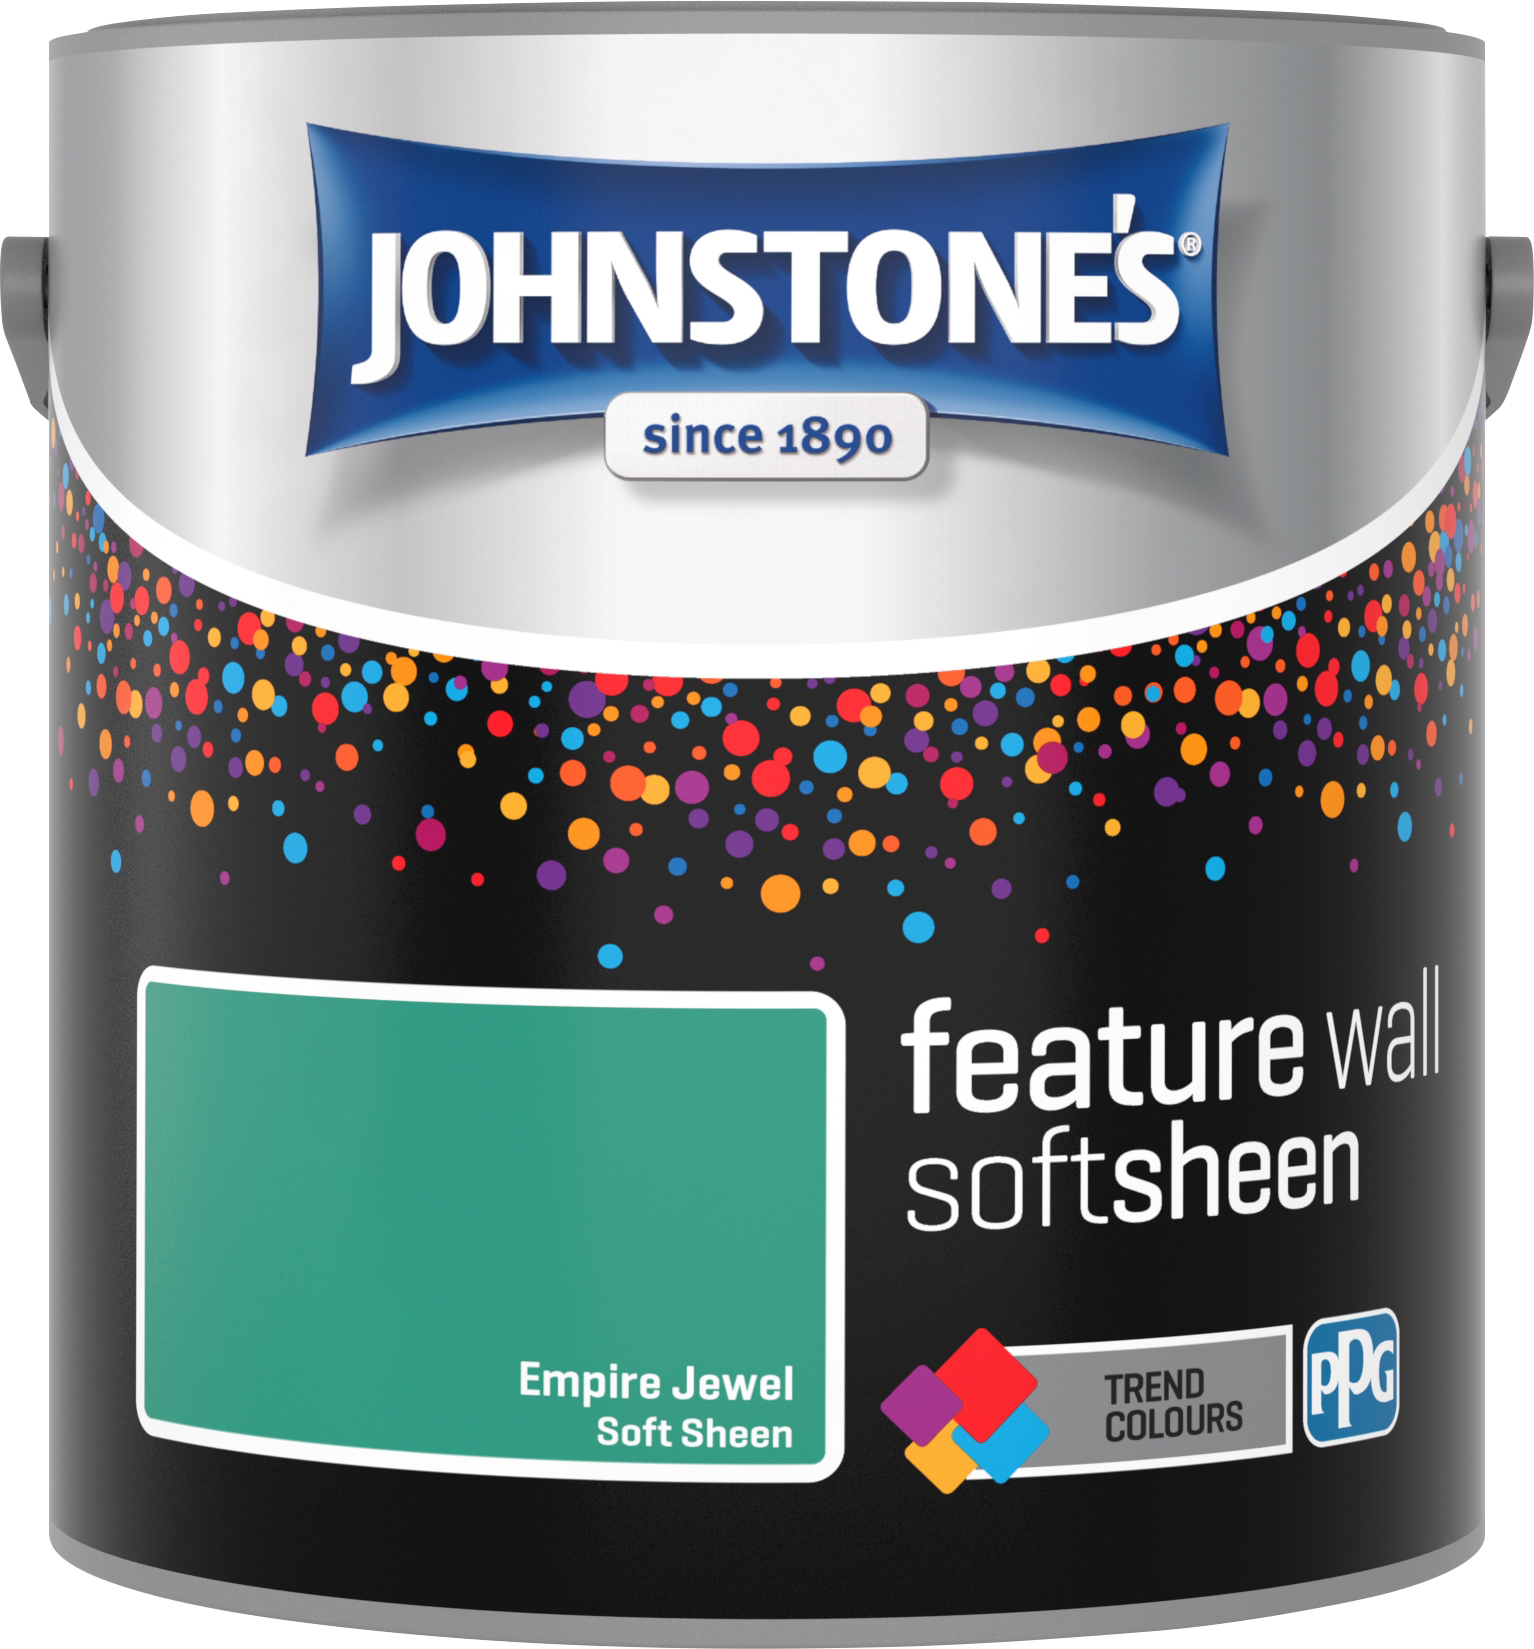 Johnstone's 2.5 Litre Feature Wall Soft Sheen Emulsion Paint - Empire Jewel